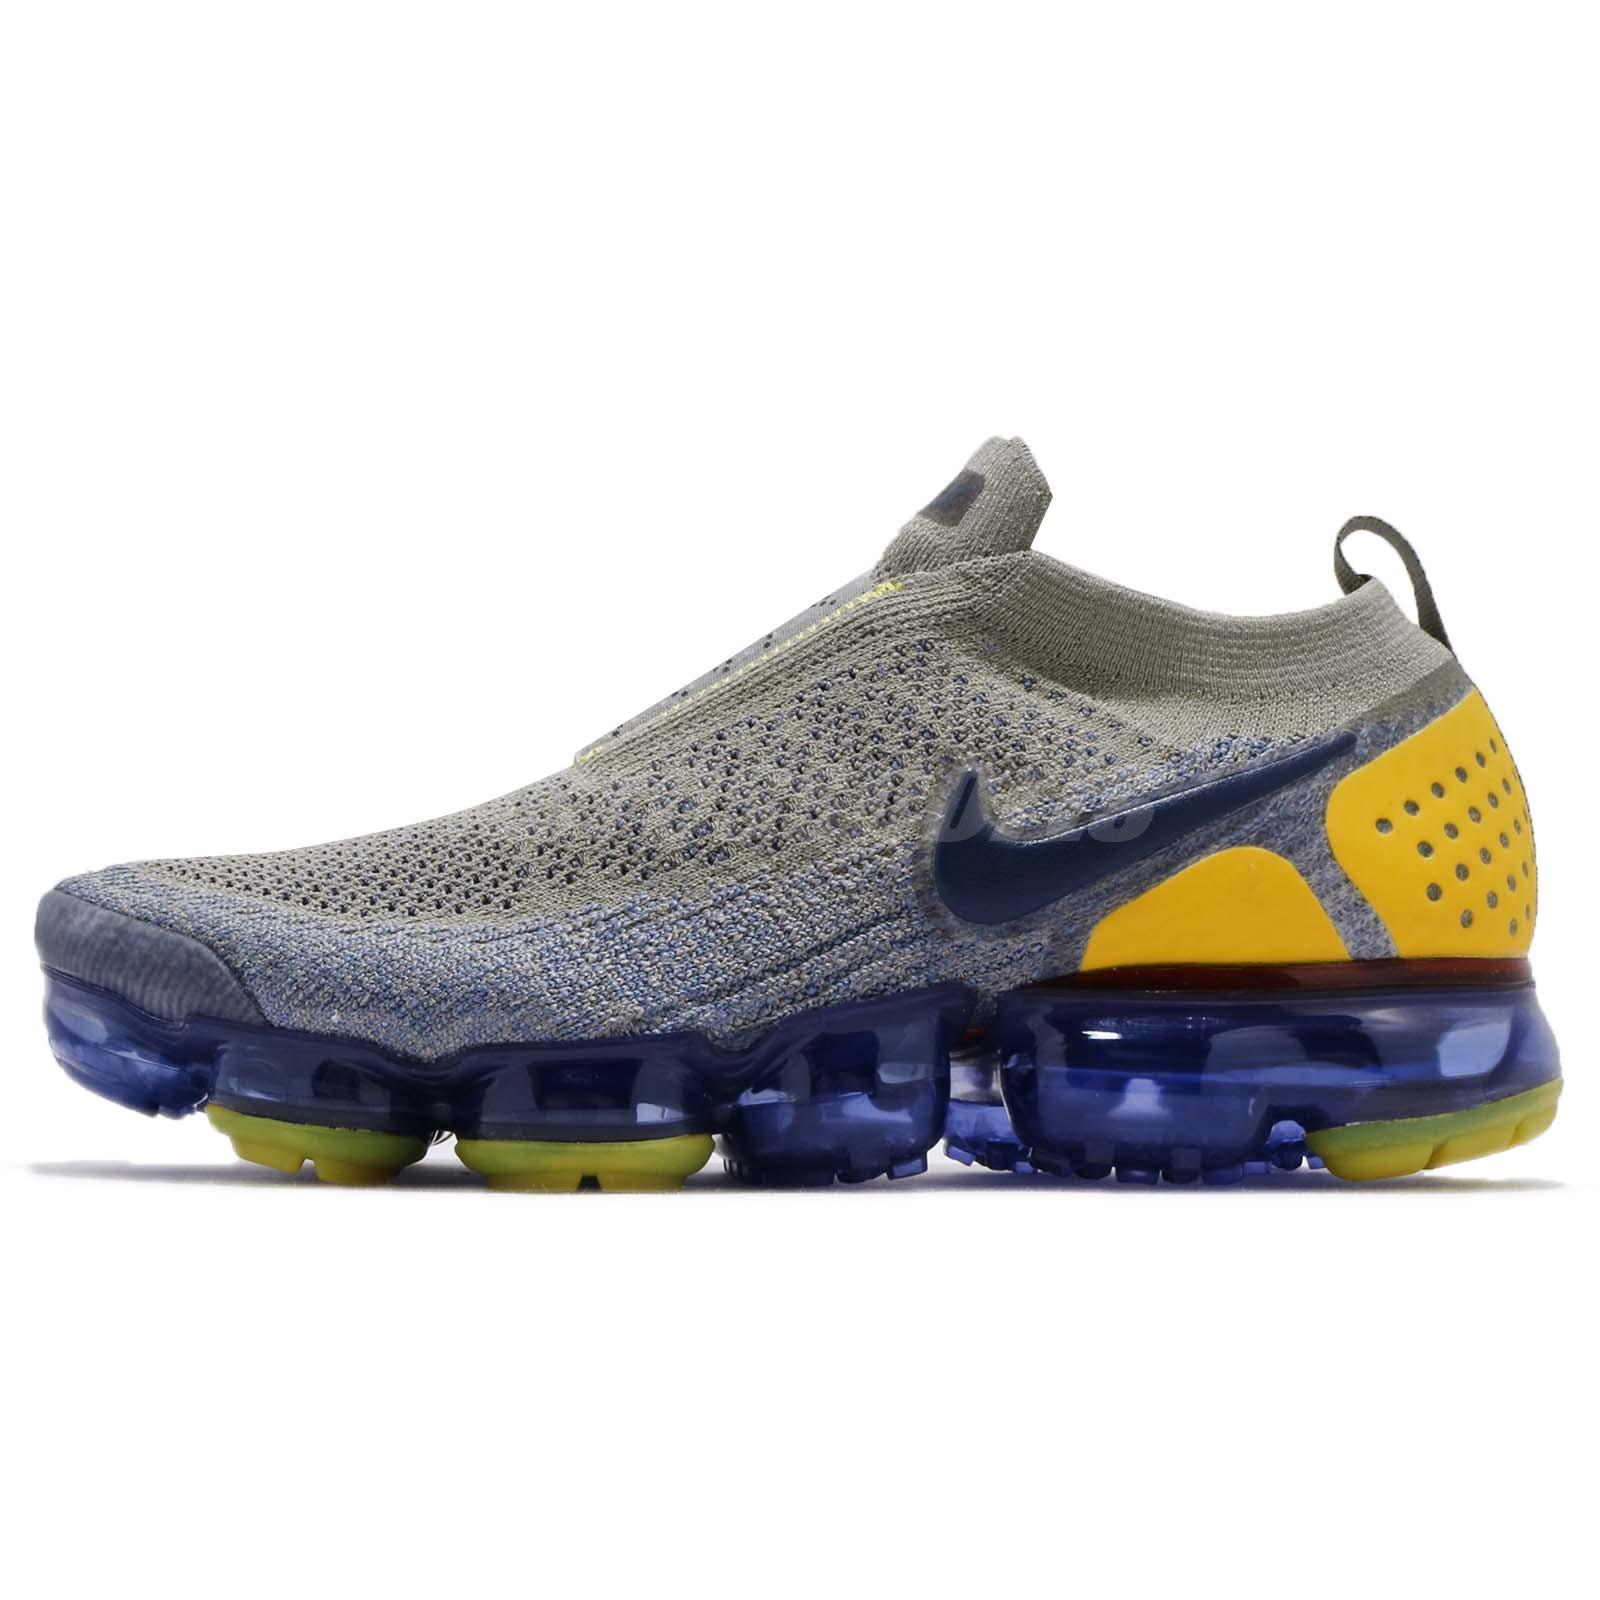 best website faf41 10afb Details about Nike Air Vapormax FK Moc 2 II Flyknit Dark Stucco Navy Men  Running AH7006-004